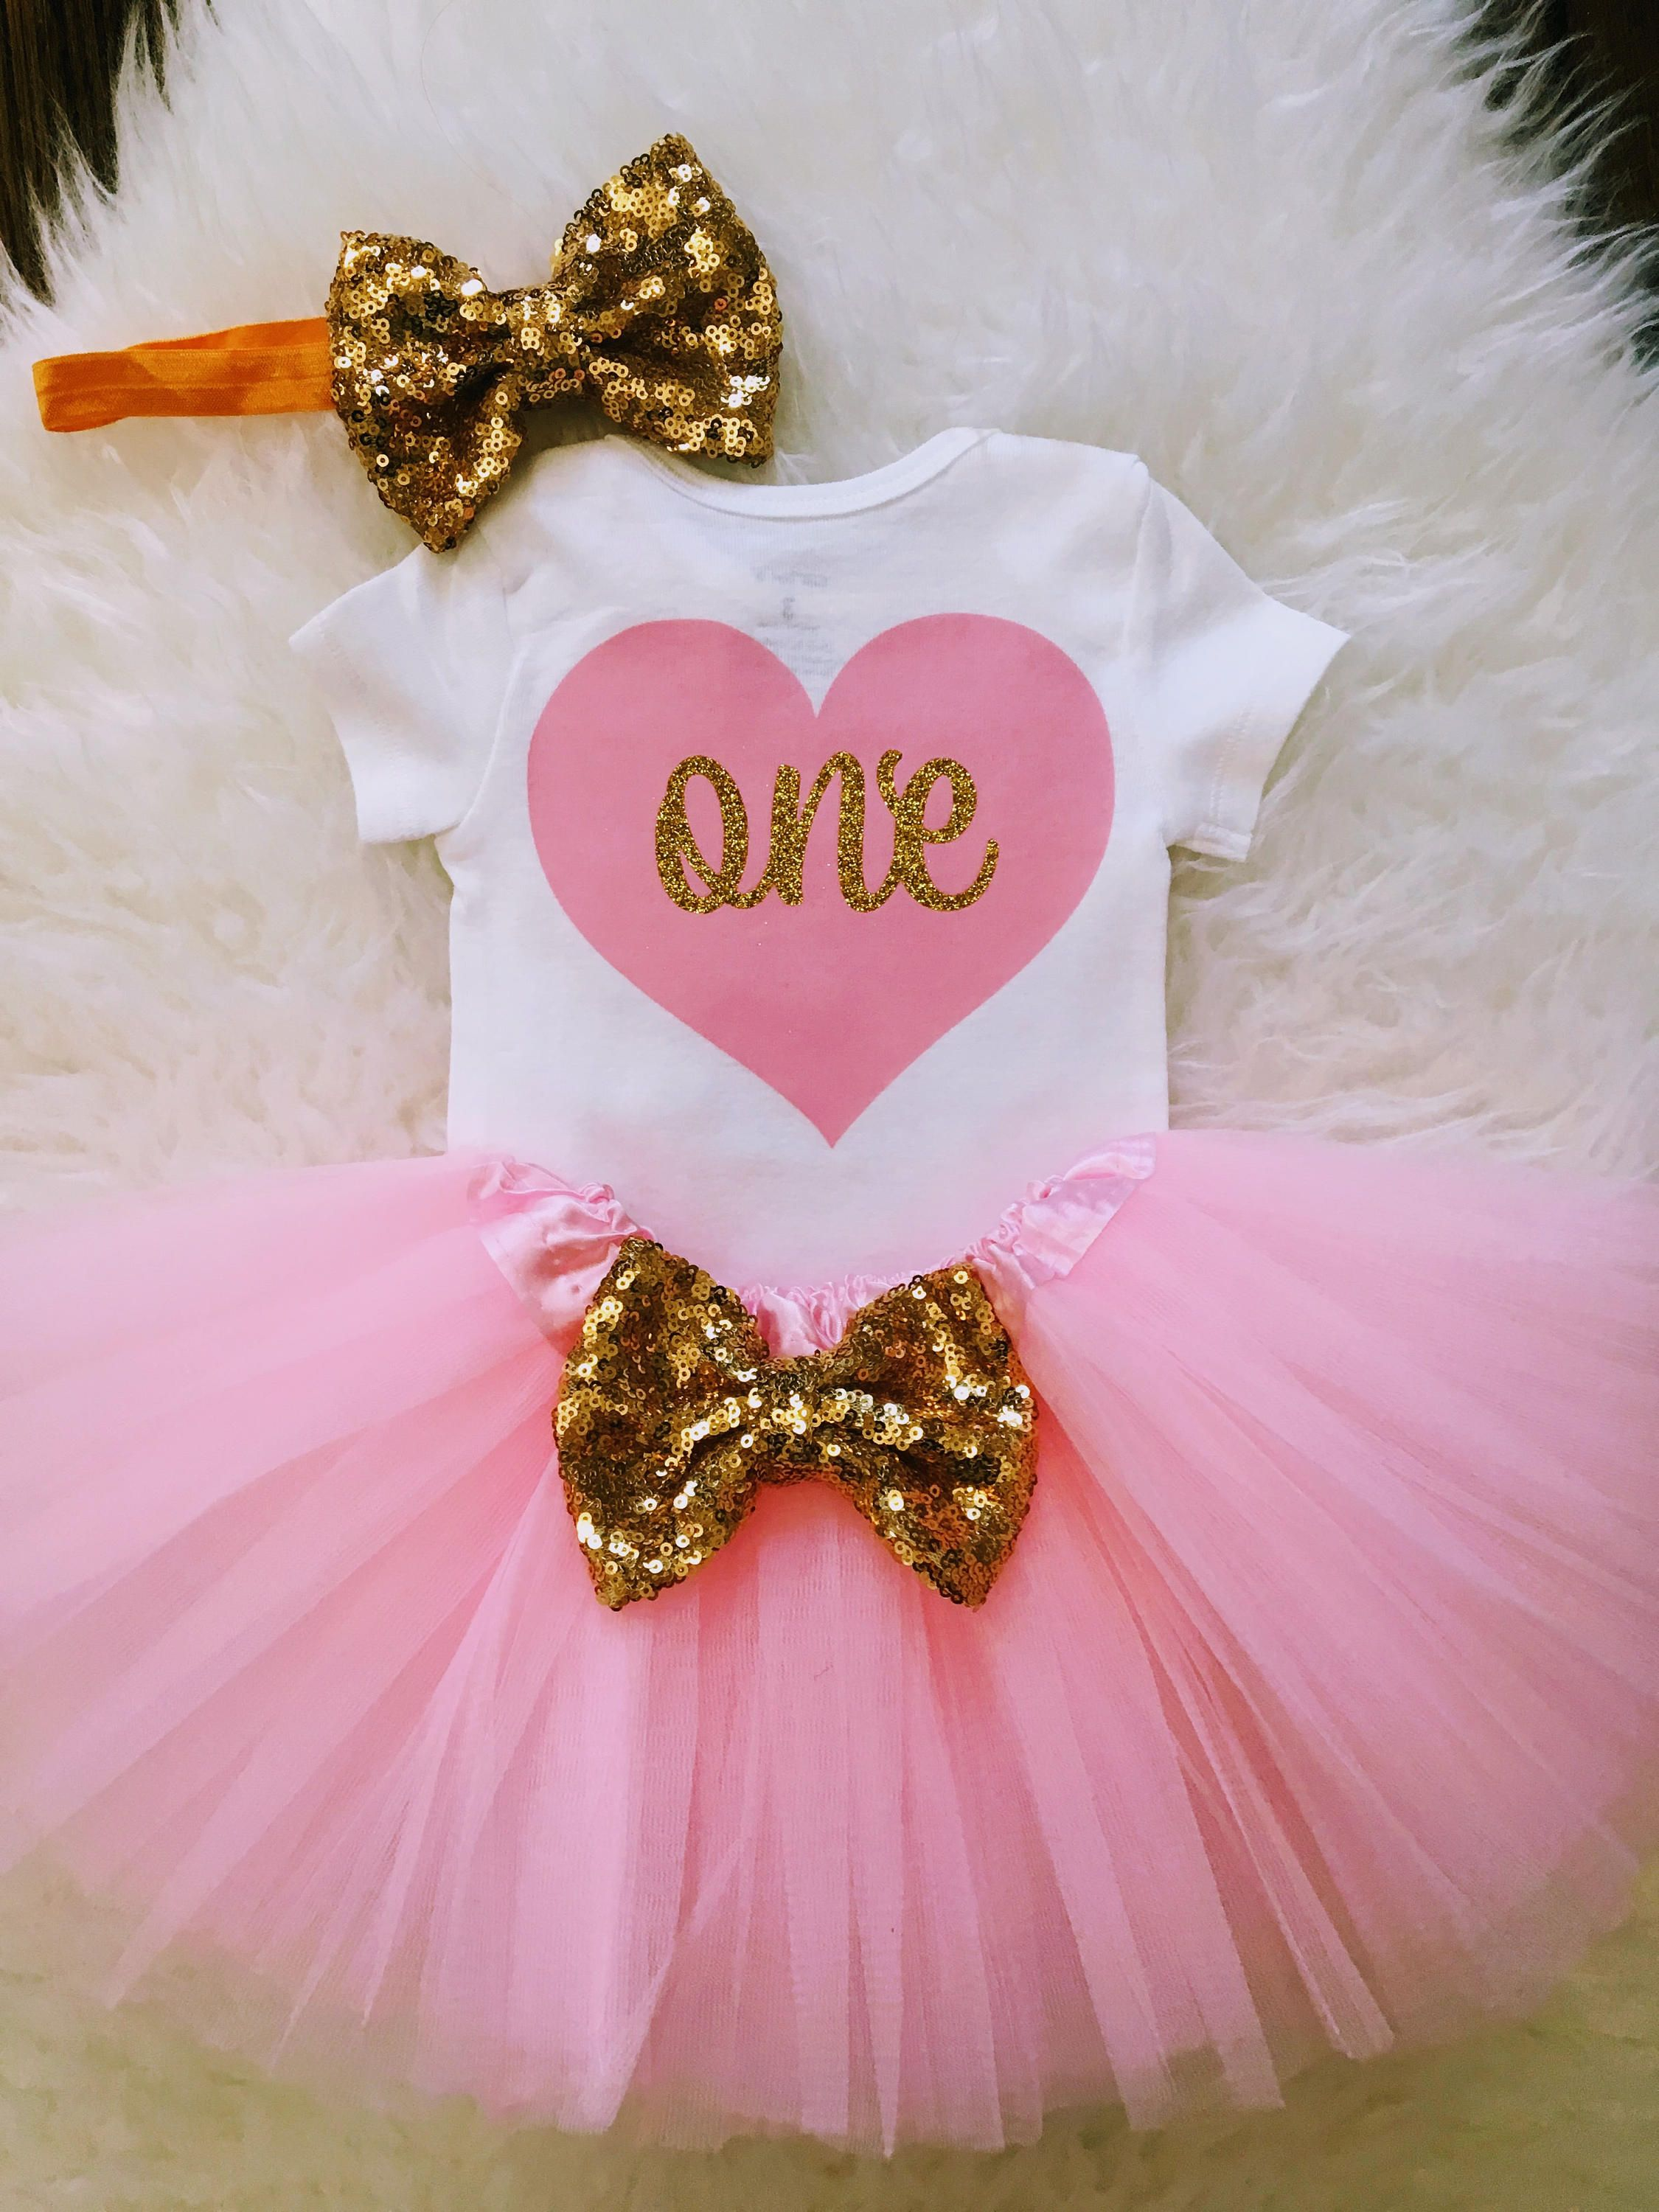 07a8194c1f30 Baby Girl 1st Birthday Outfit, 1st birthday girl outfit, Cake Smash Outfit,  Pink and Gold 1st Birthday Tutu Set, First Birthday Photo Prop by  FunMunchkin on ...